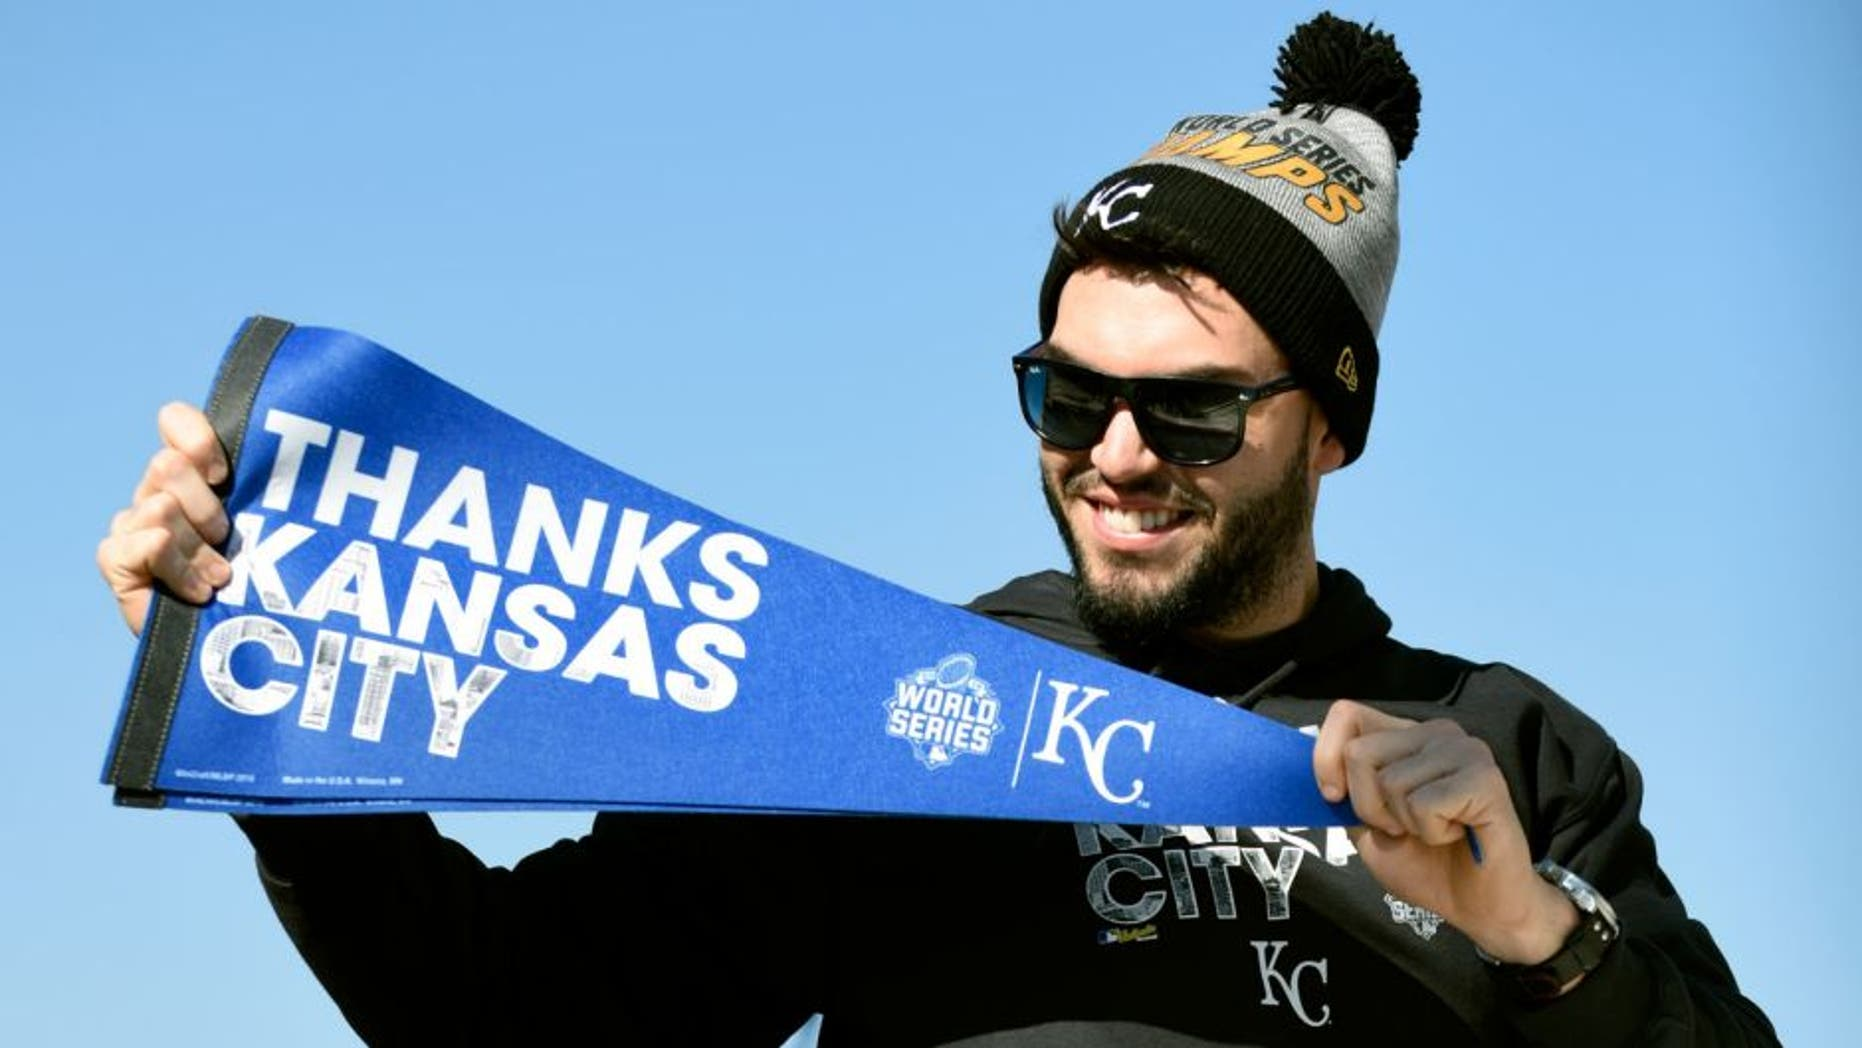 KANSAS CITY, MO -NOVERMBER 3: Eric Hosmer #35 of the Kansas City Royals holds up a pennant thanking fans during a parade to celebrate their World Series victory on November 3, 2015 in Kansas City, Missouri. (Photo by Ed Zurga/Getty Images)